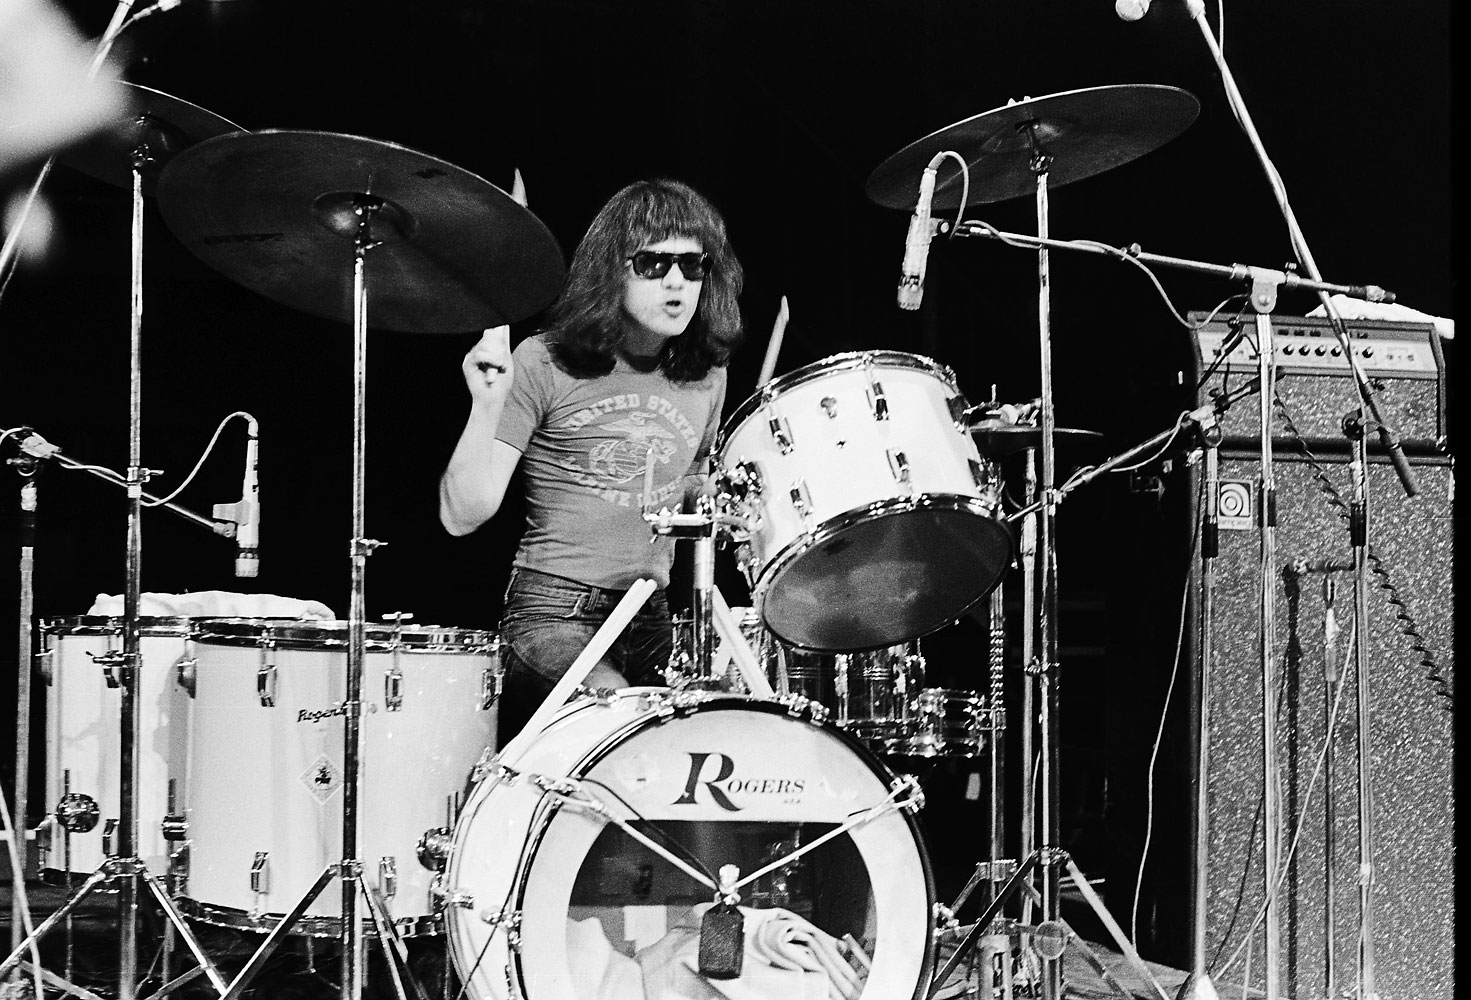 Tommy Ramone performs on stage with The Ramones at The Roundhouse in London, July 4th, 1976.